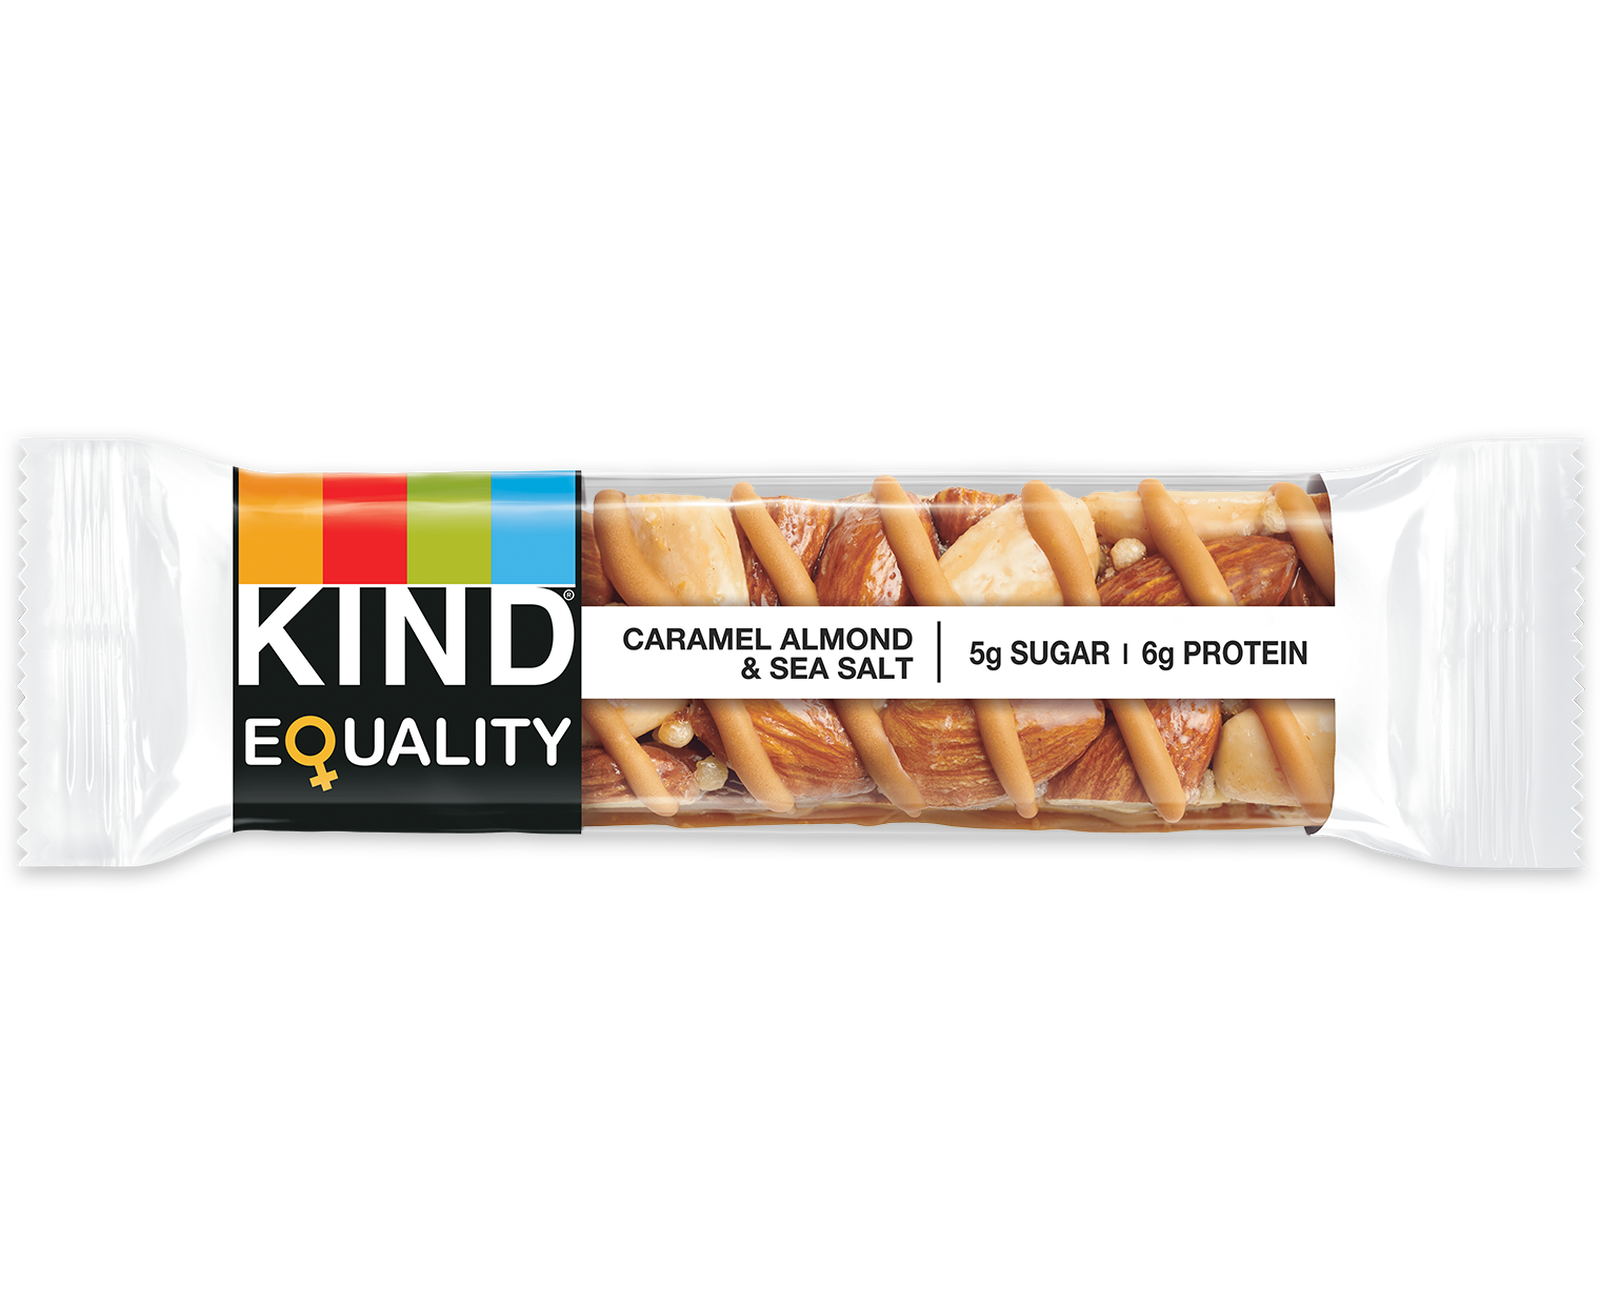 KIND announces commitment to support racial equality